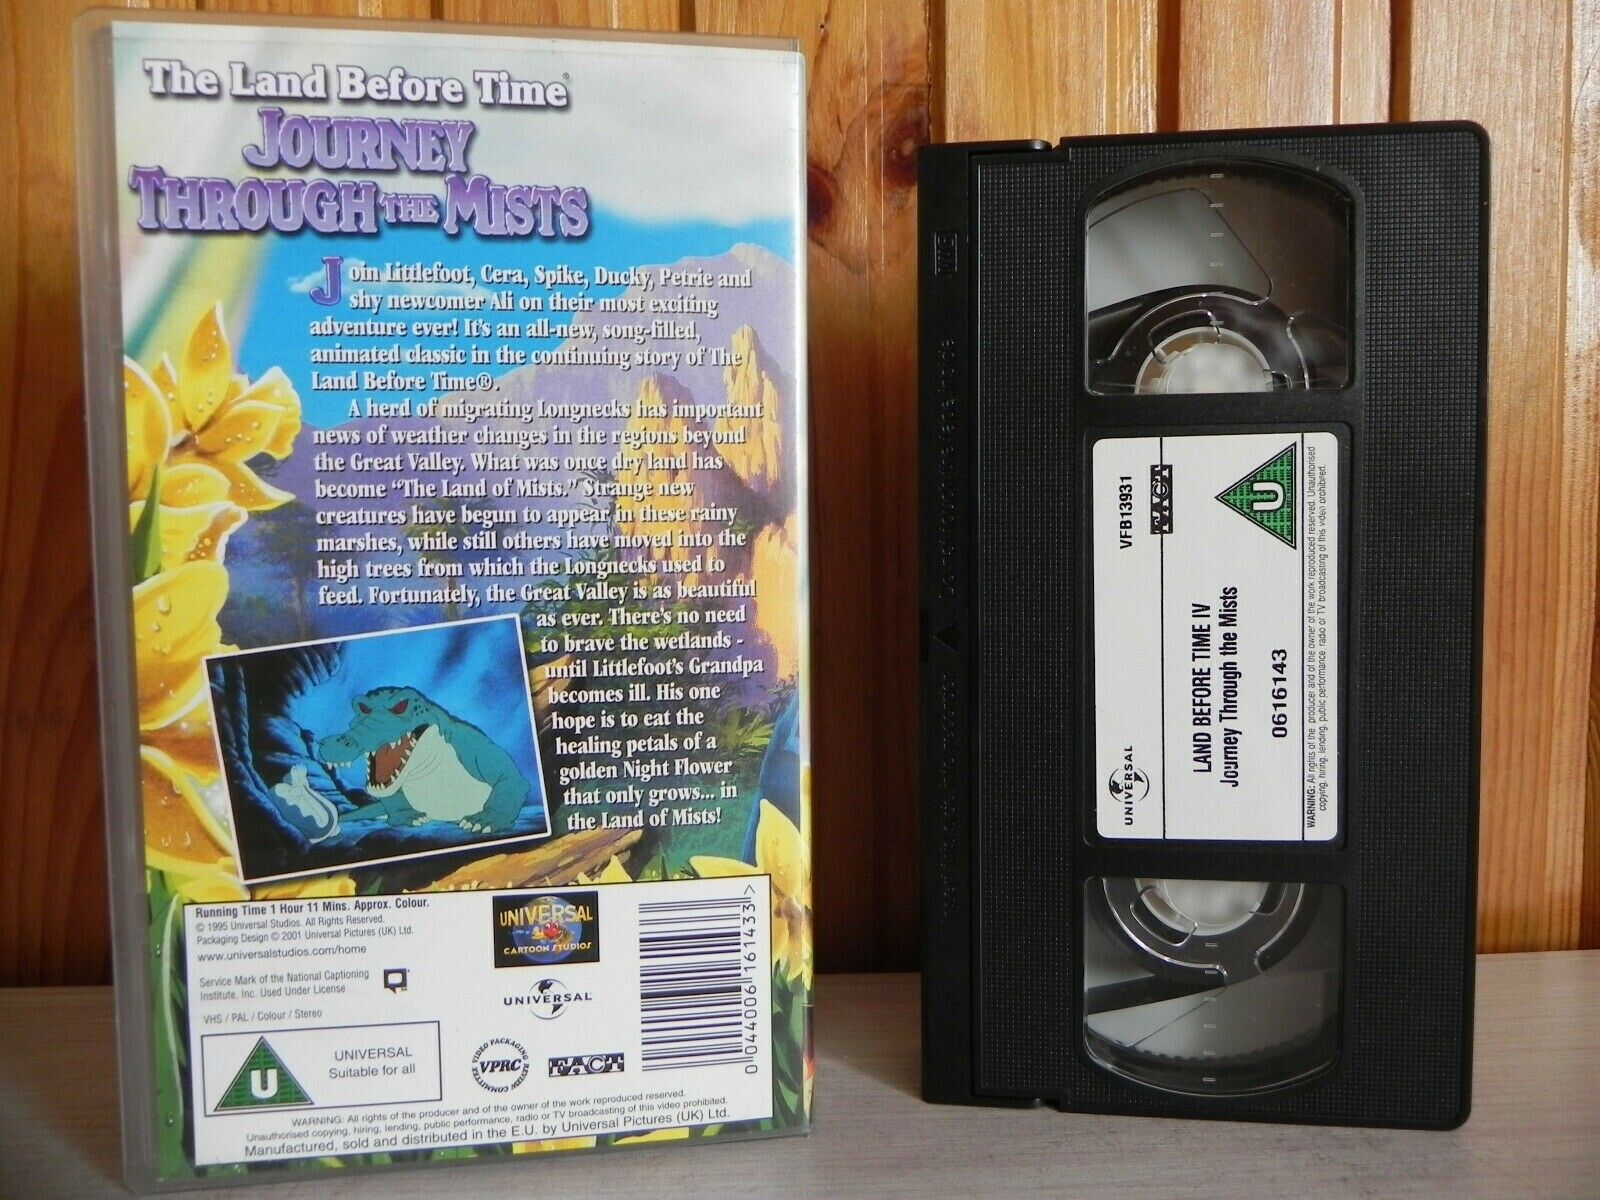 The Land Before Time - Journey Through The Mists - Universal - Adventure - VHS